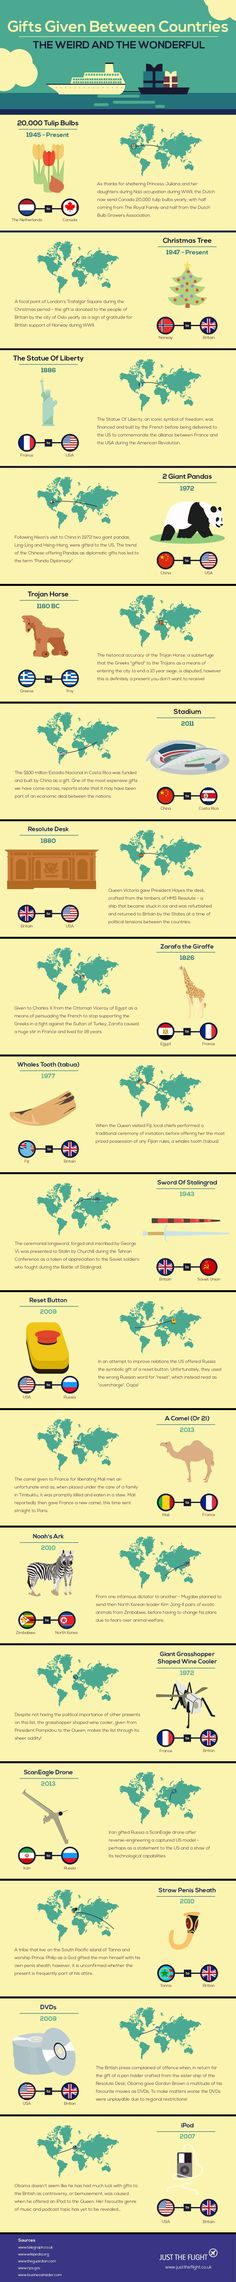 Gifts Given Between Countries #Infographic #History #christmasinfographic